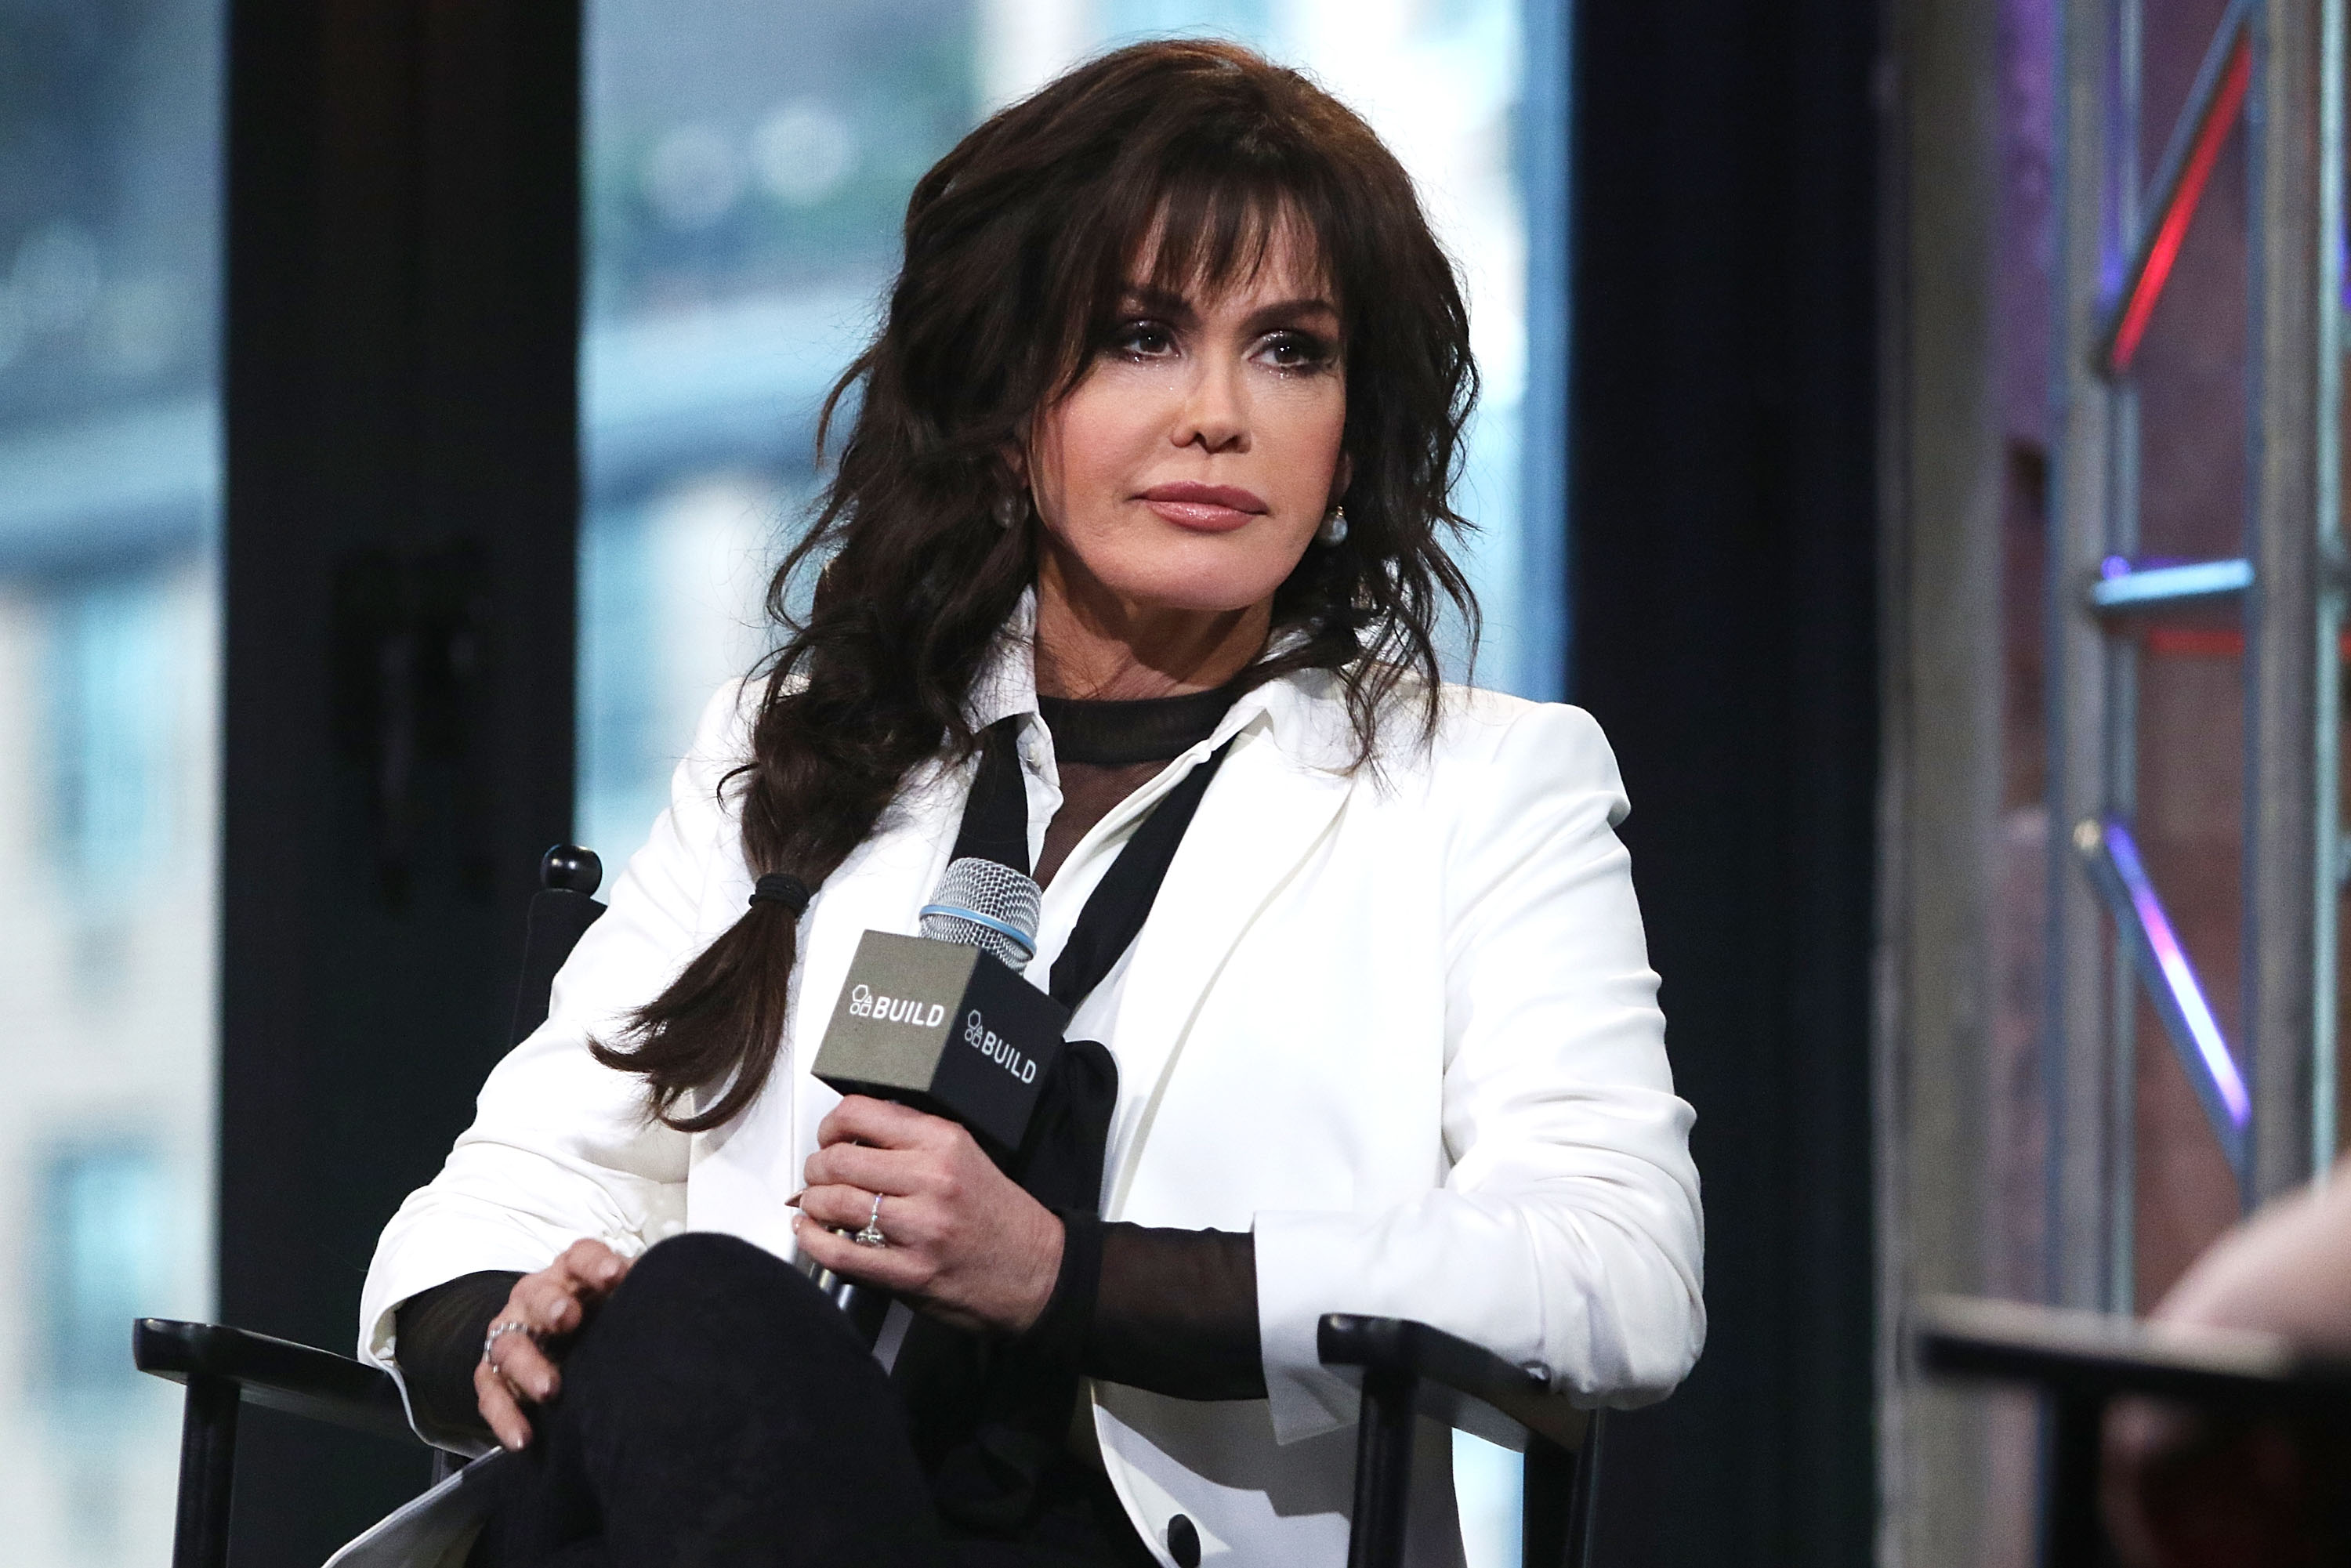 Marie Osmond attends the AOL Build Speaker Series in New York City on April 15, 2016 | Photo: Getty Images